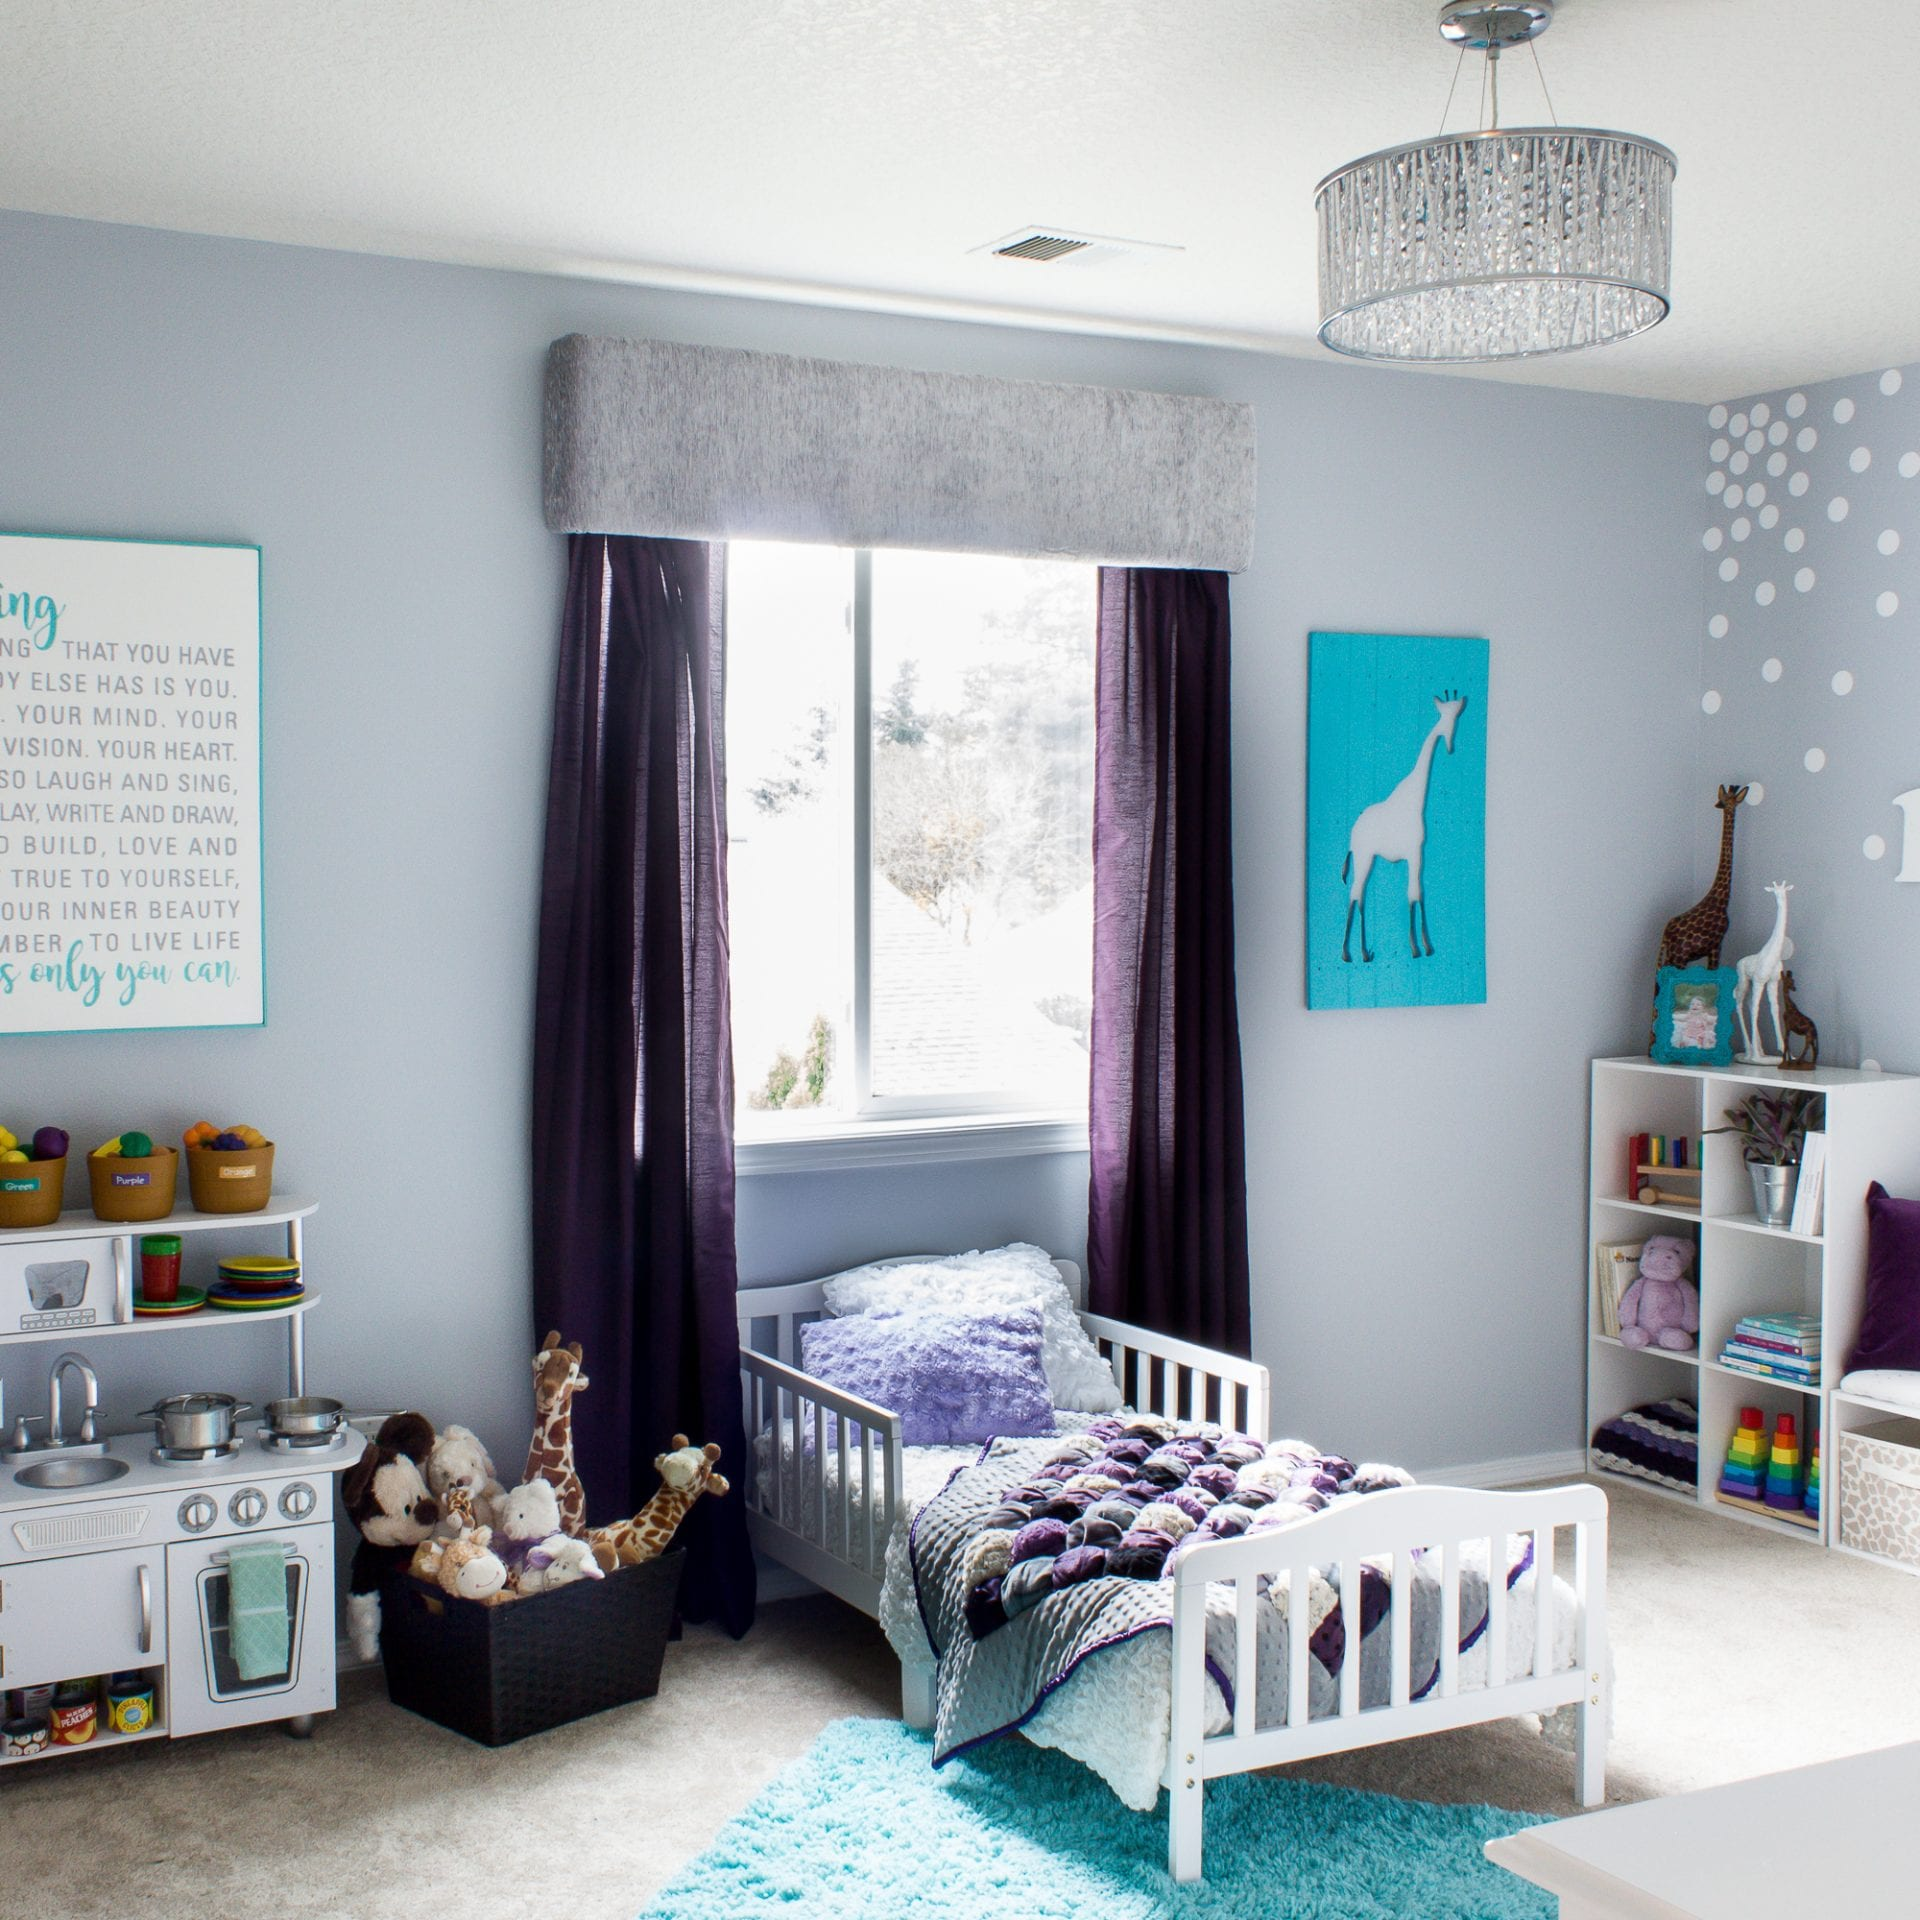 Cute Toddler Girl Room Ideas With May Diy Decor Tutorials And Plans